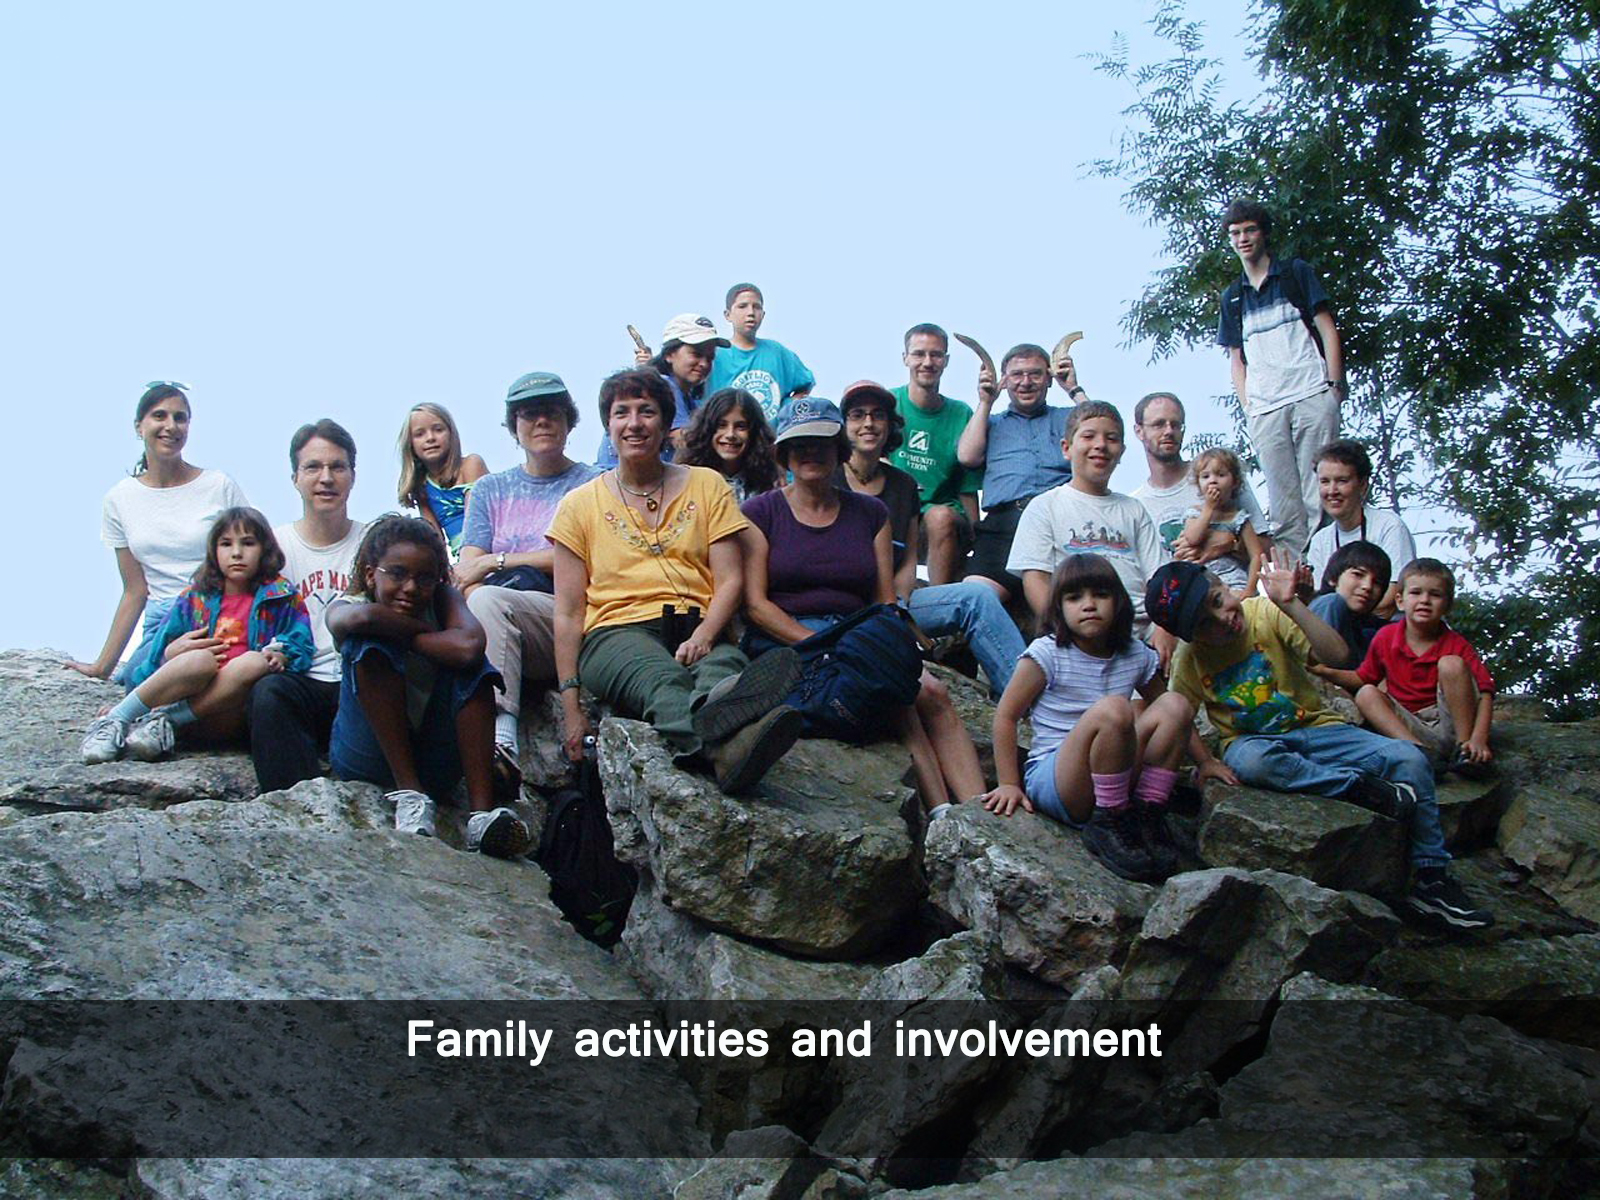 Family activities and involvement